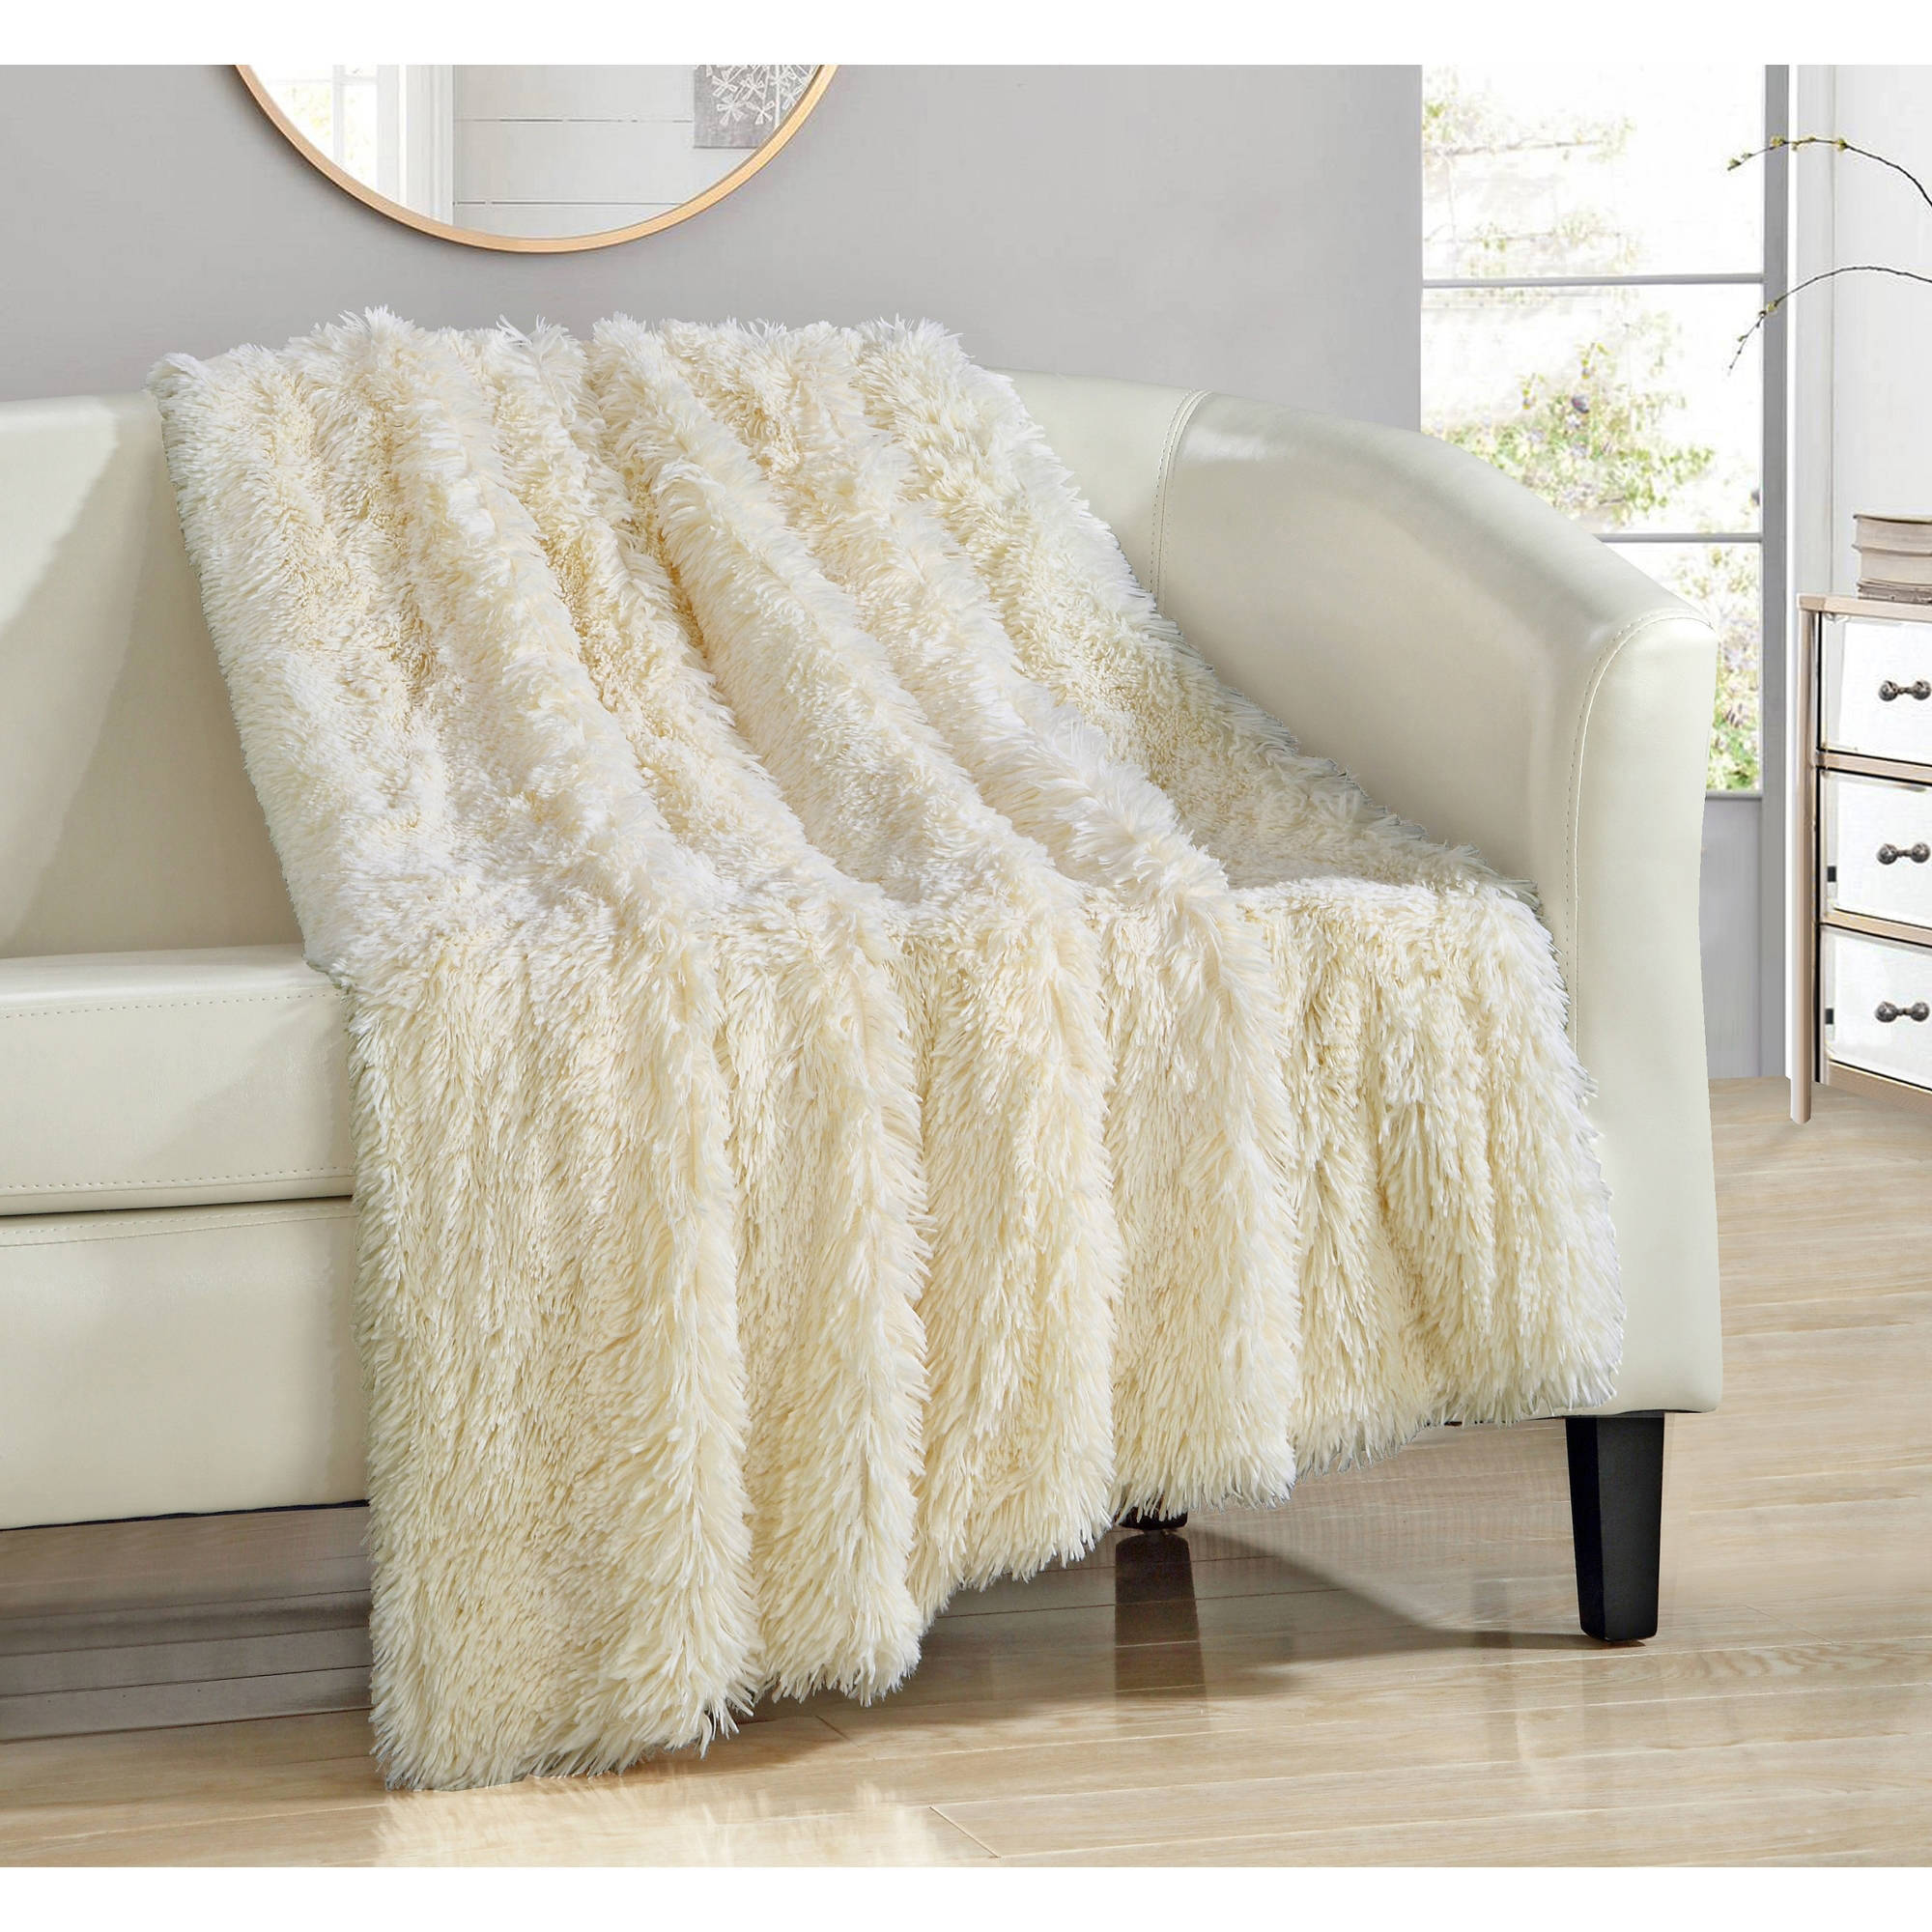 Chic Home Juneau Faux Fur Ultra Plush Decorative Throw Blanket